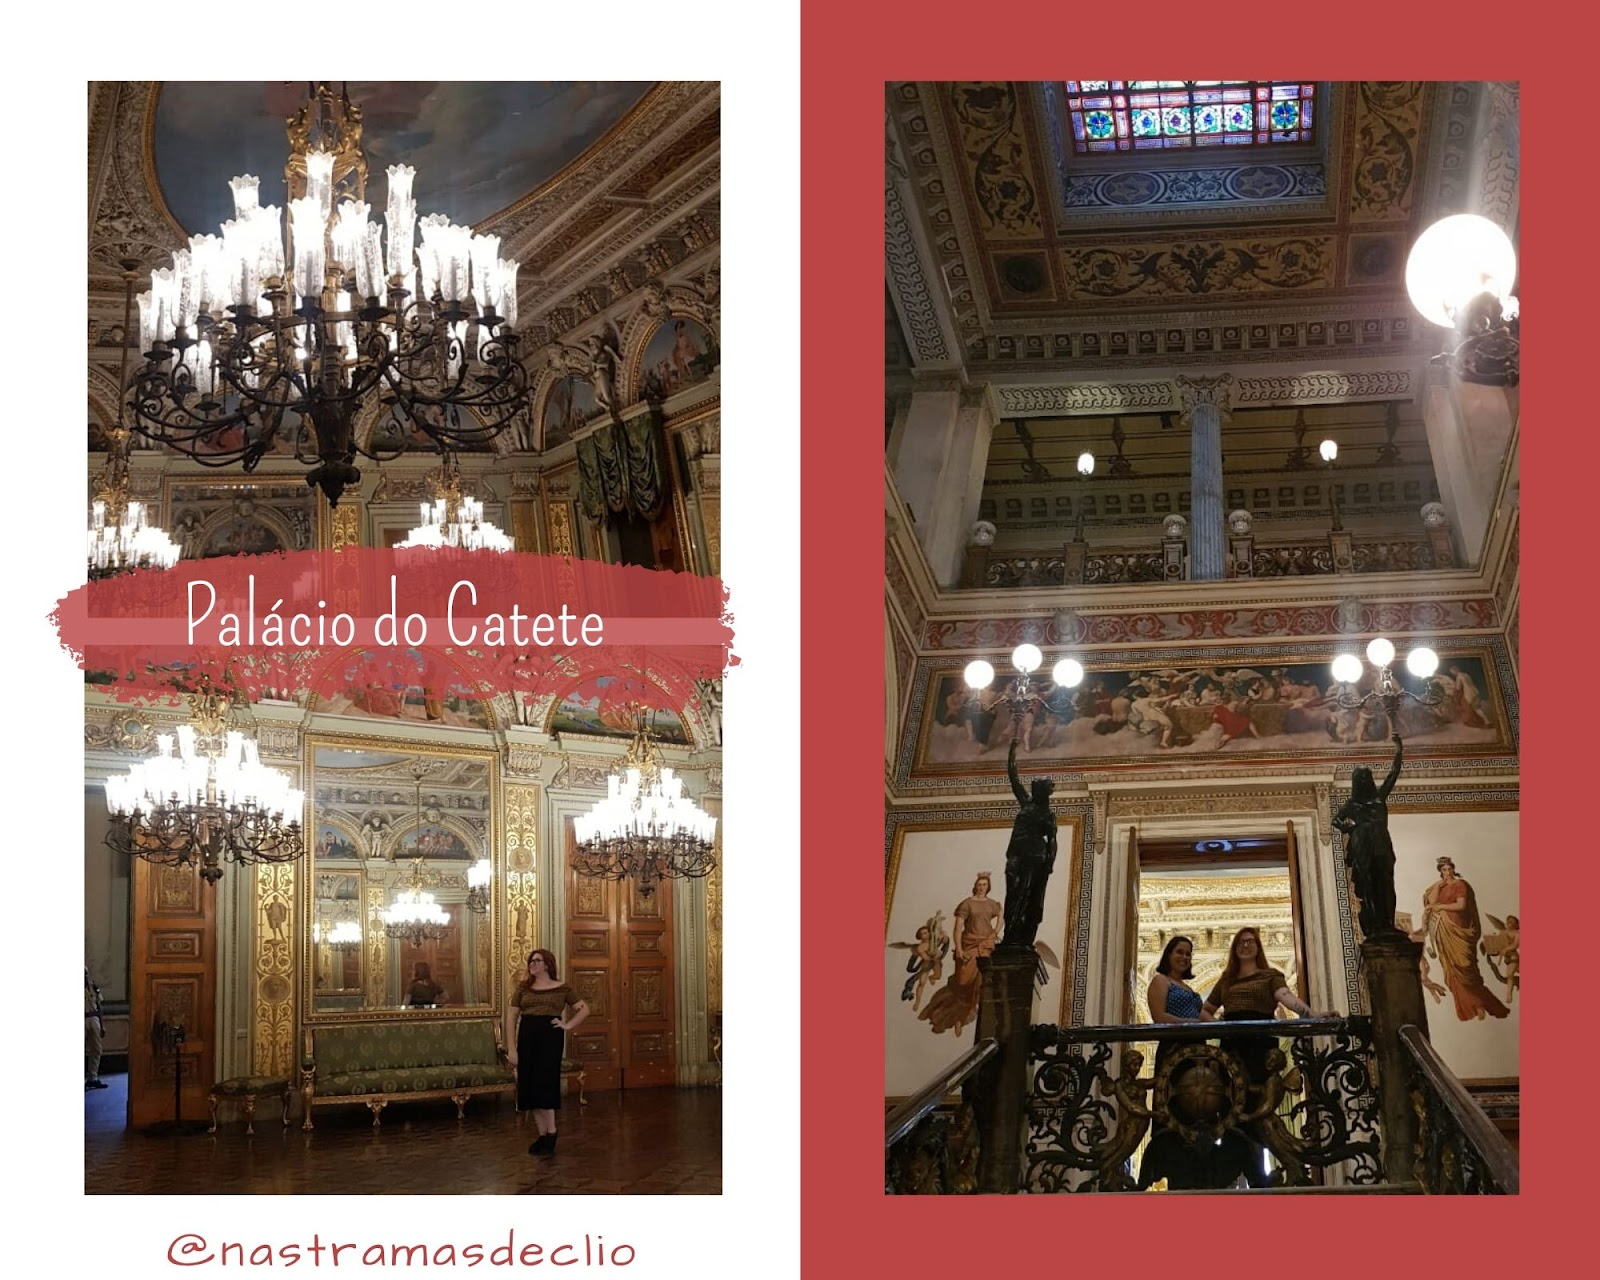 Fotografias do interior do Palácio do Catete.